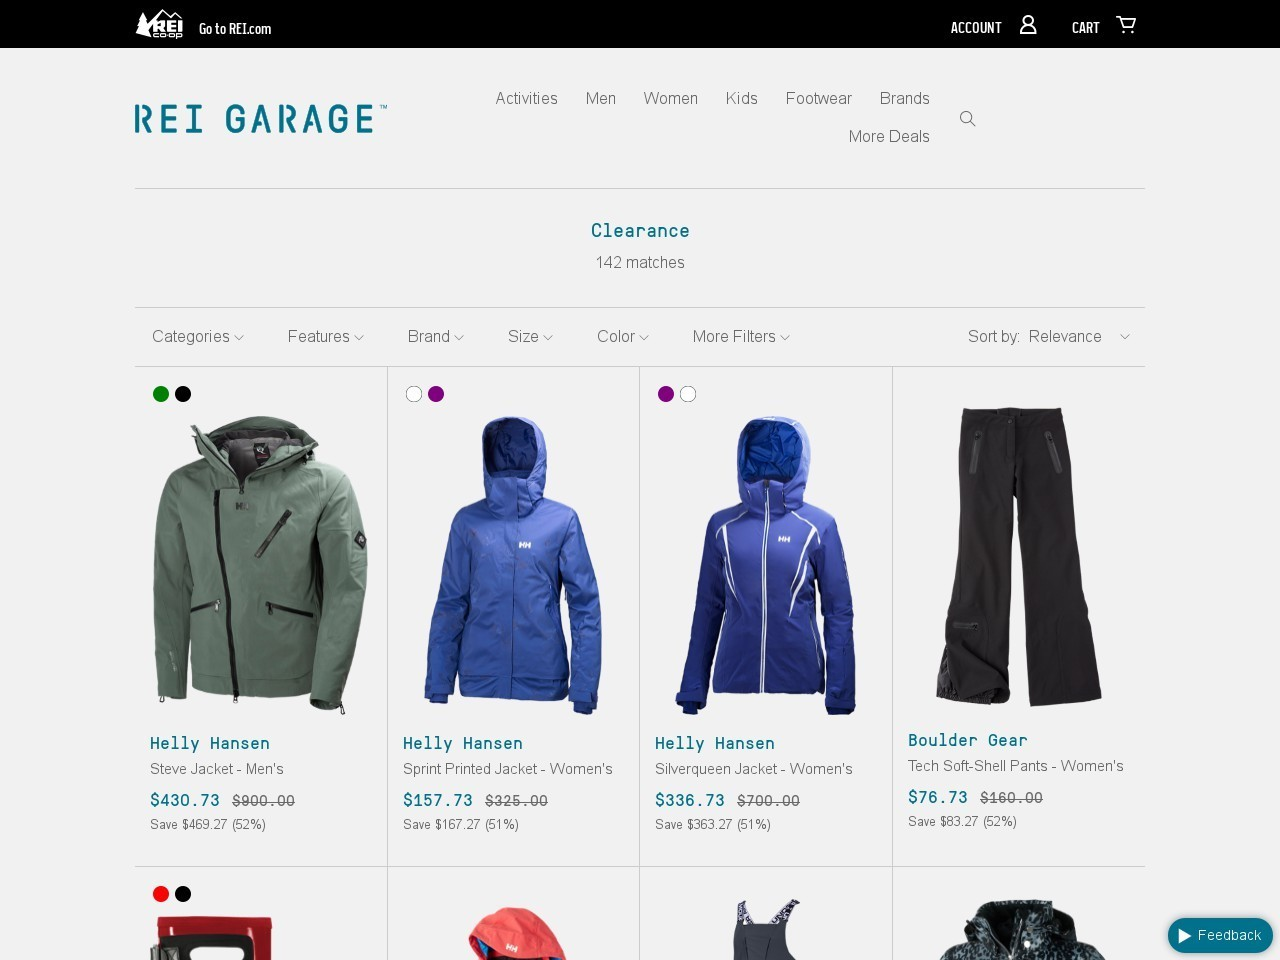 Bargain - Up to 71% OFF - Clearance Items @ Rei Garage